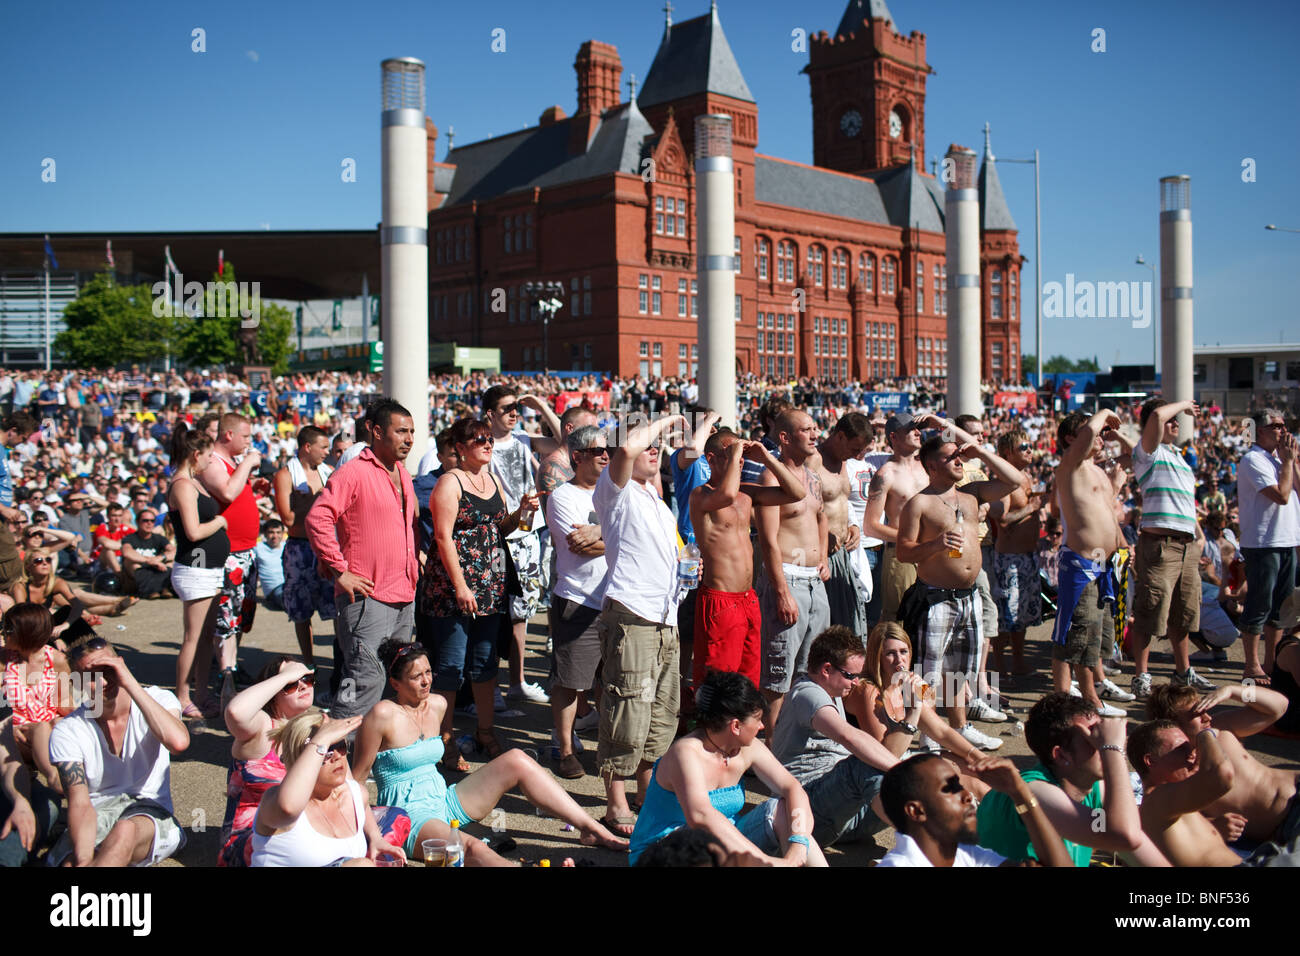 The 2010 Football League Championship play-off Final between Blackpool and Cardiff City watched on a big screen - Stock Image